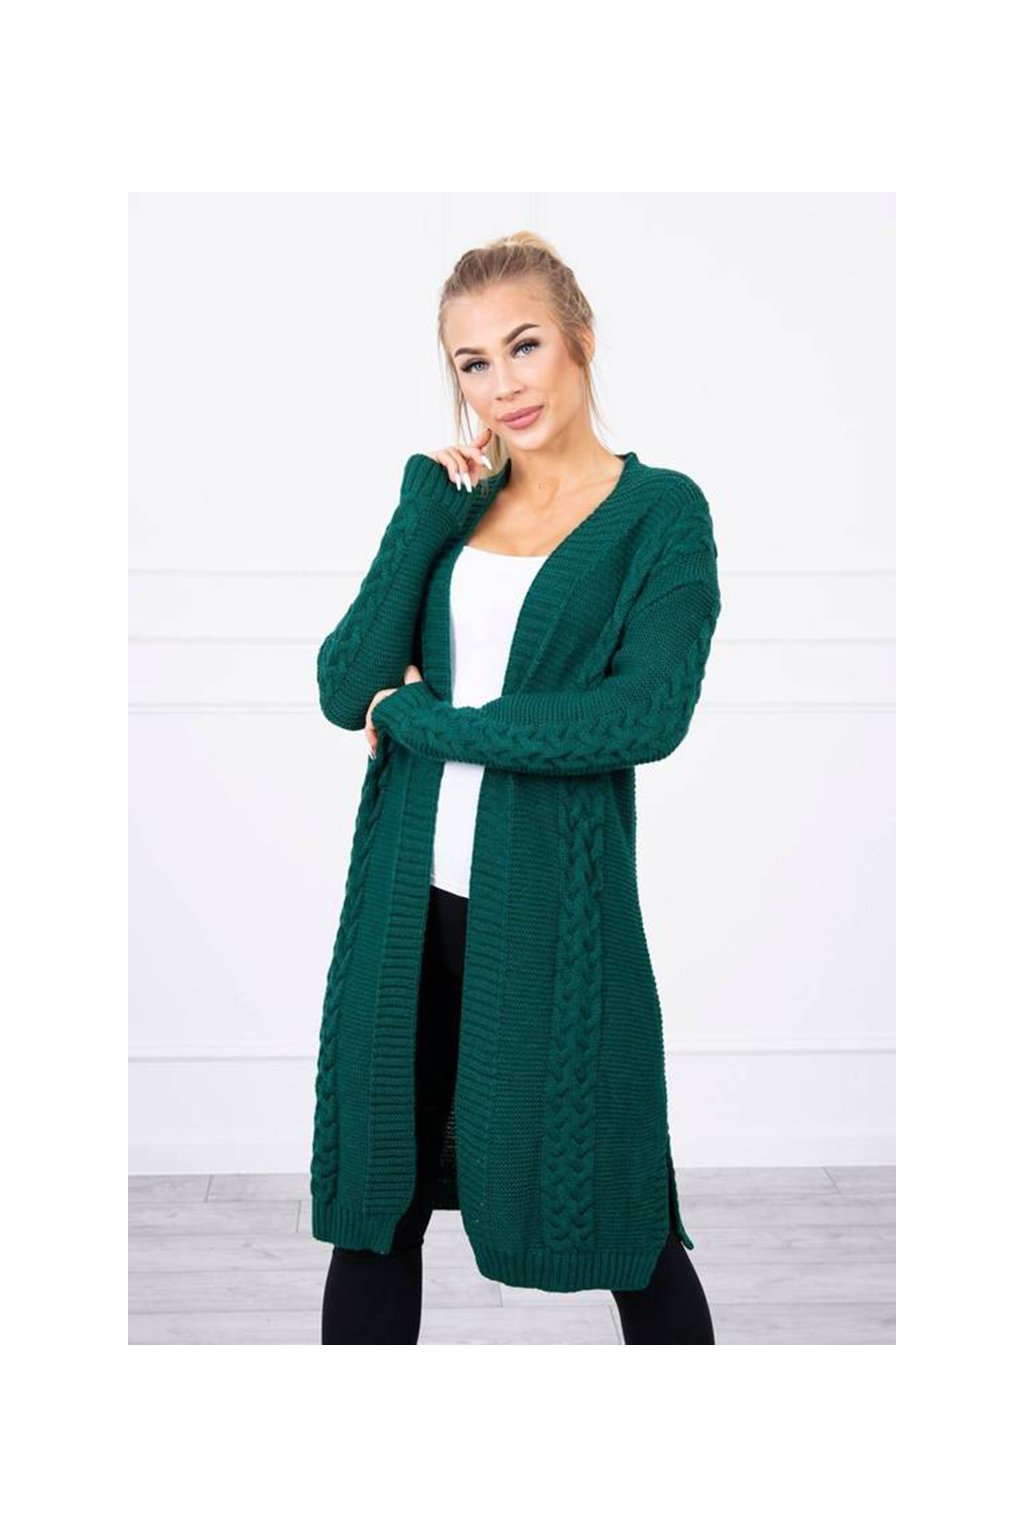 eng pm Sweater Cardigan weave the braid green 19347 2